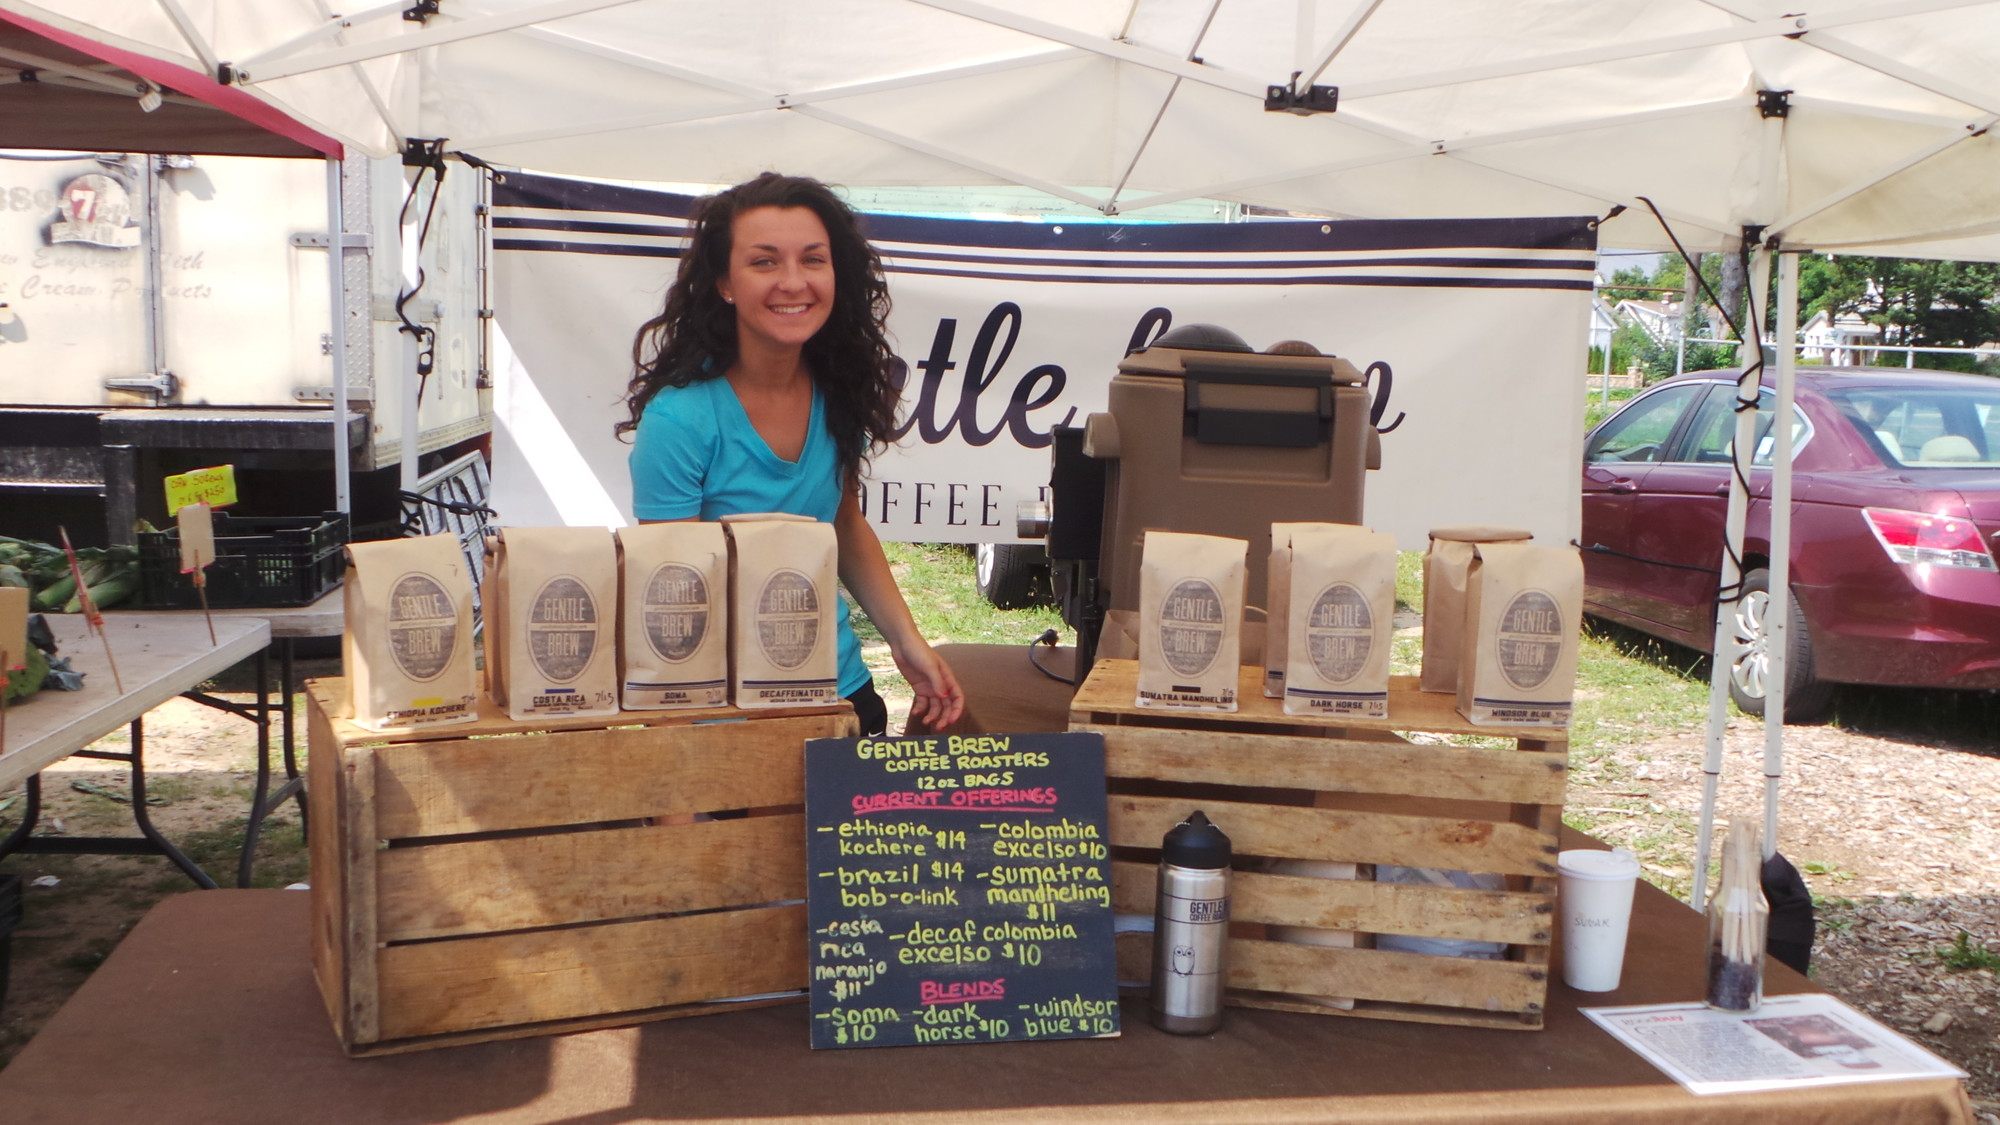 Gentle Brew brings its global coffee beans to the farmer's market